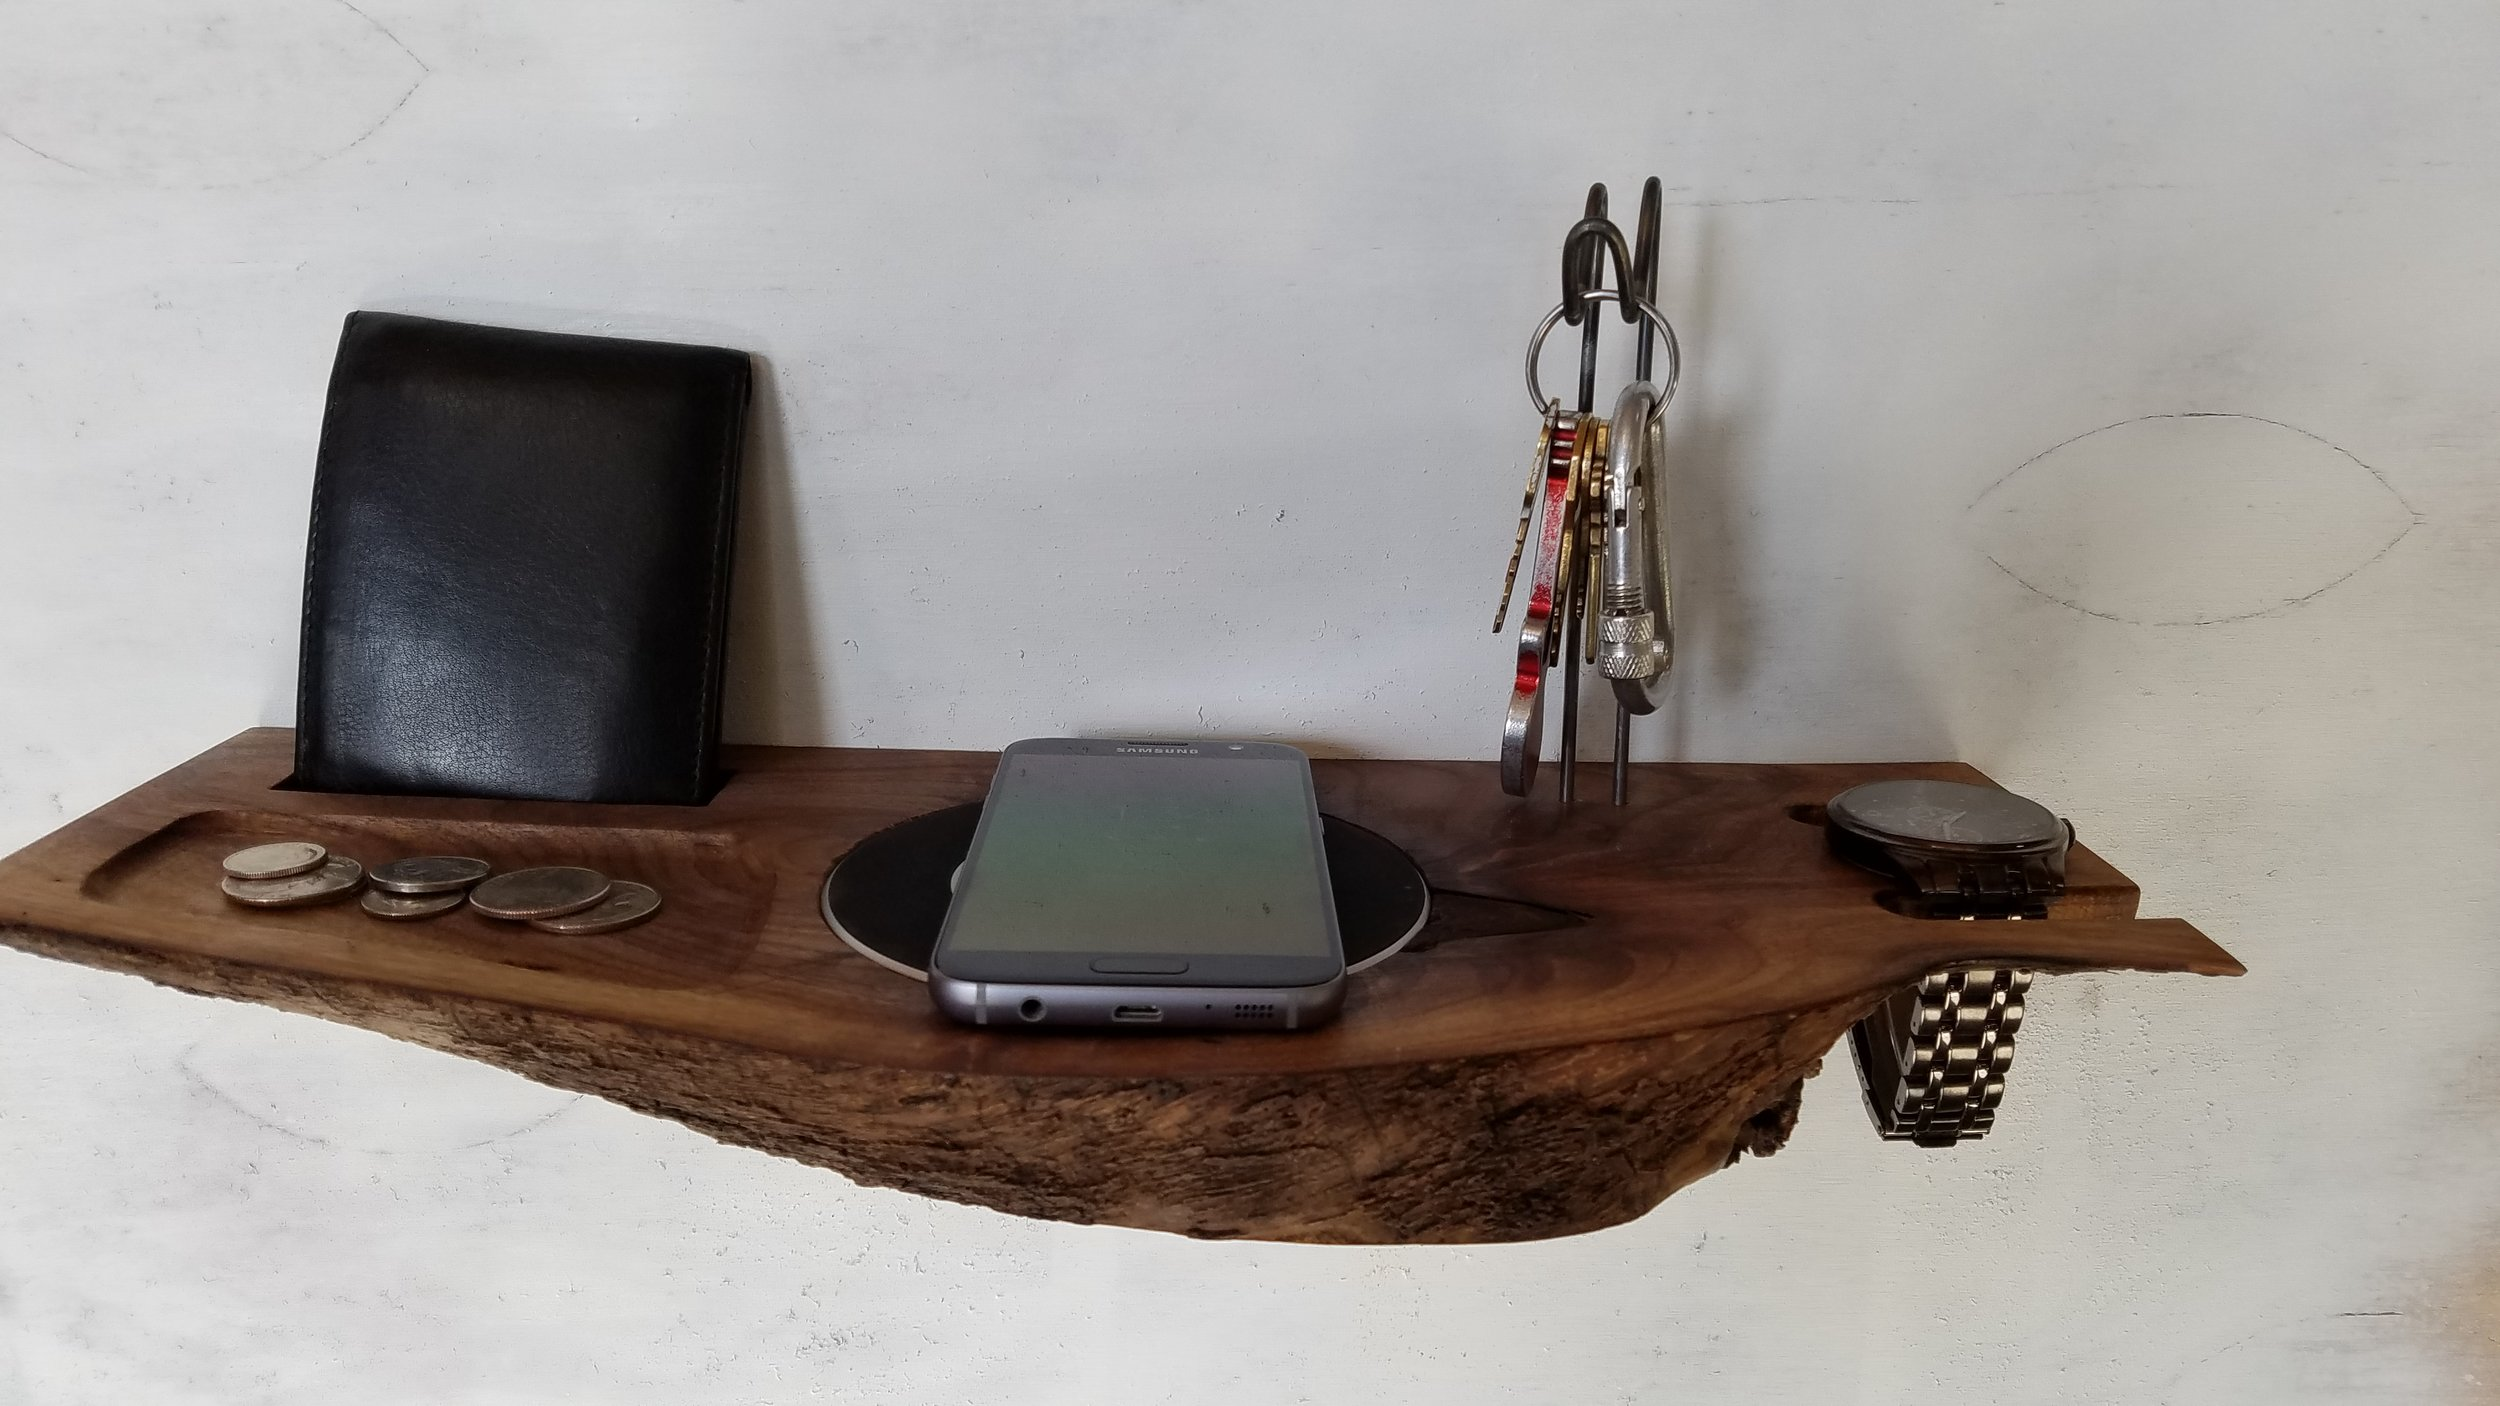 Wall Valet - This wall mounted valet is made with live edged Black Walnut which was harvested using urban forestry techniques. It contains a built-in wireless phone charger.